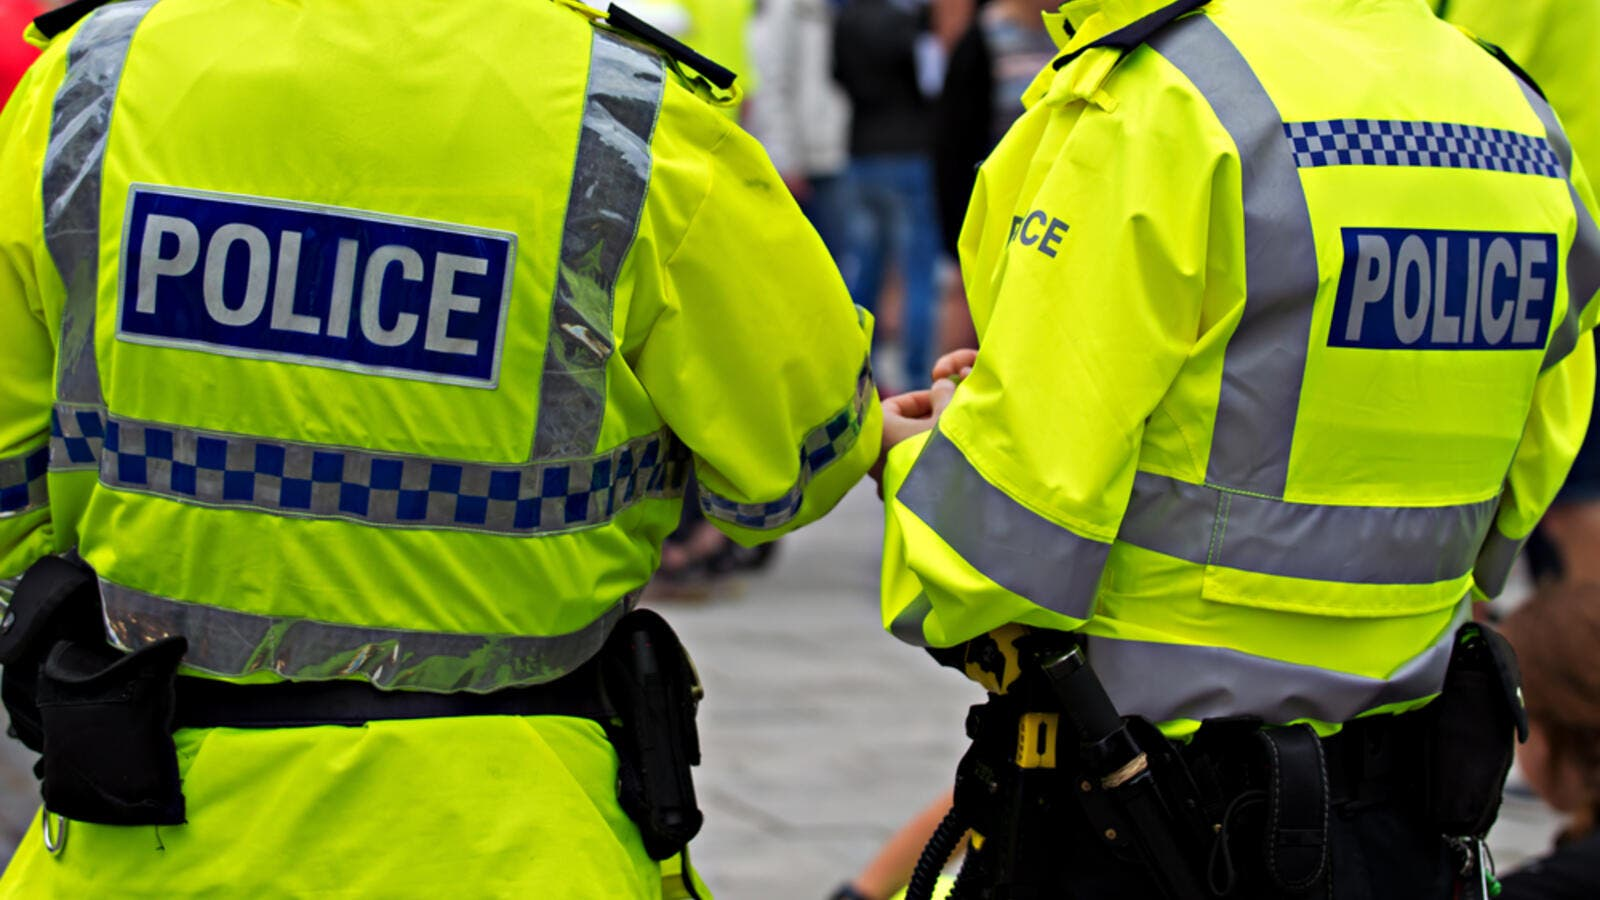 British Police Officers in high visibility uniform. (Shutterstock/ File Photo)